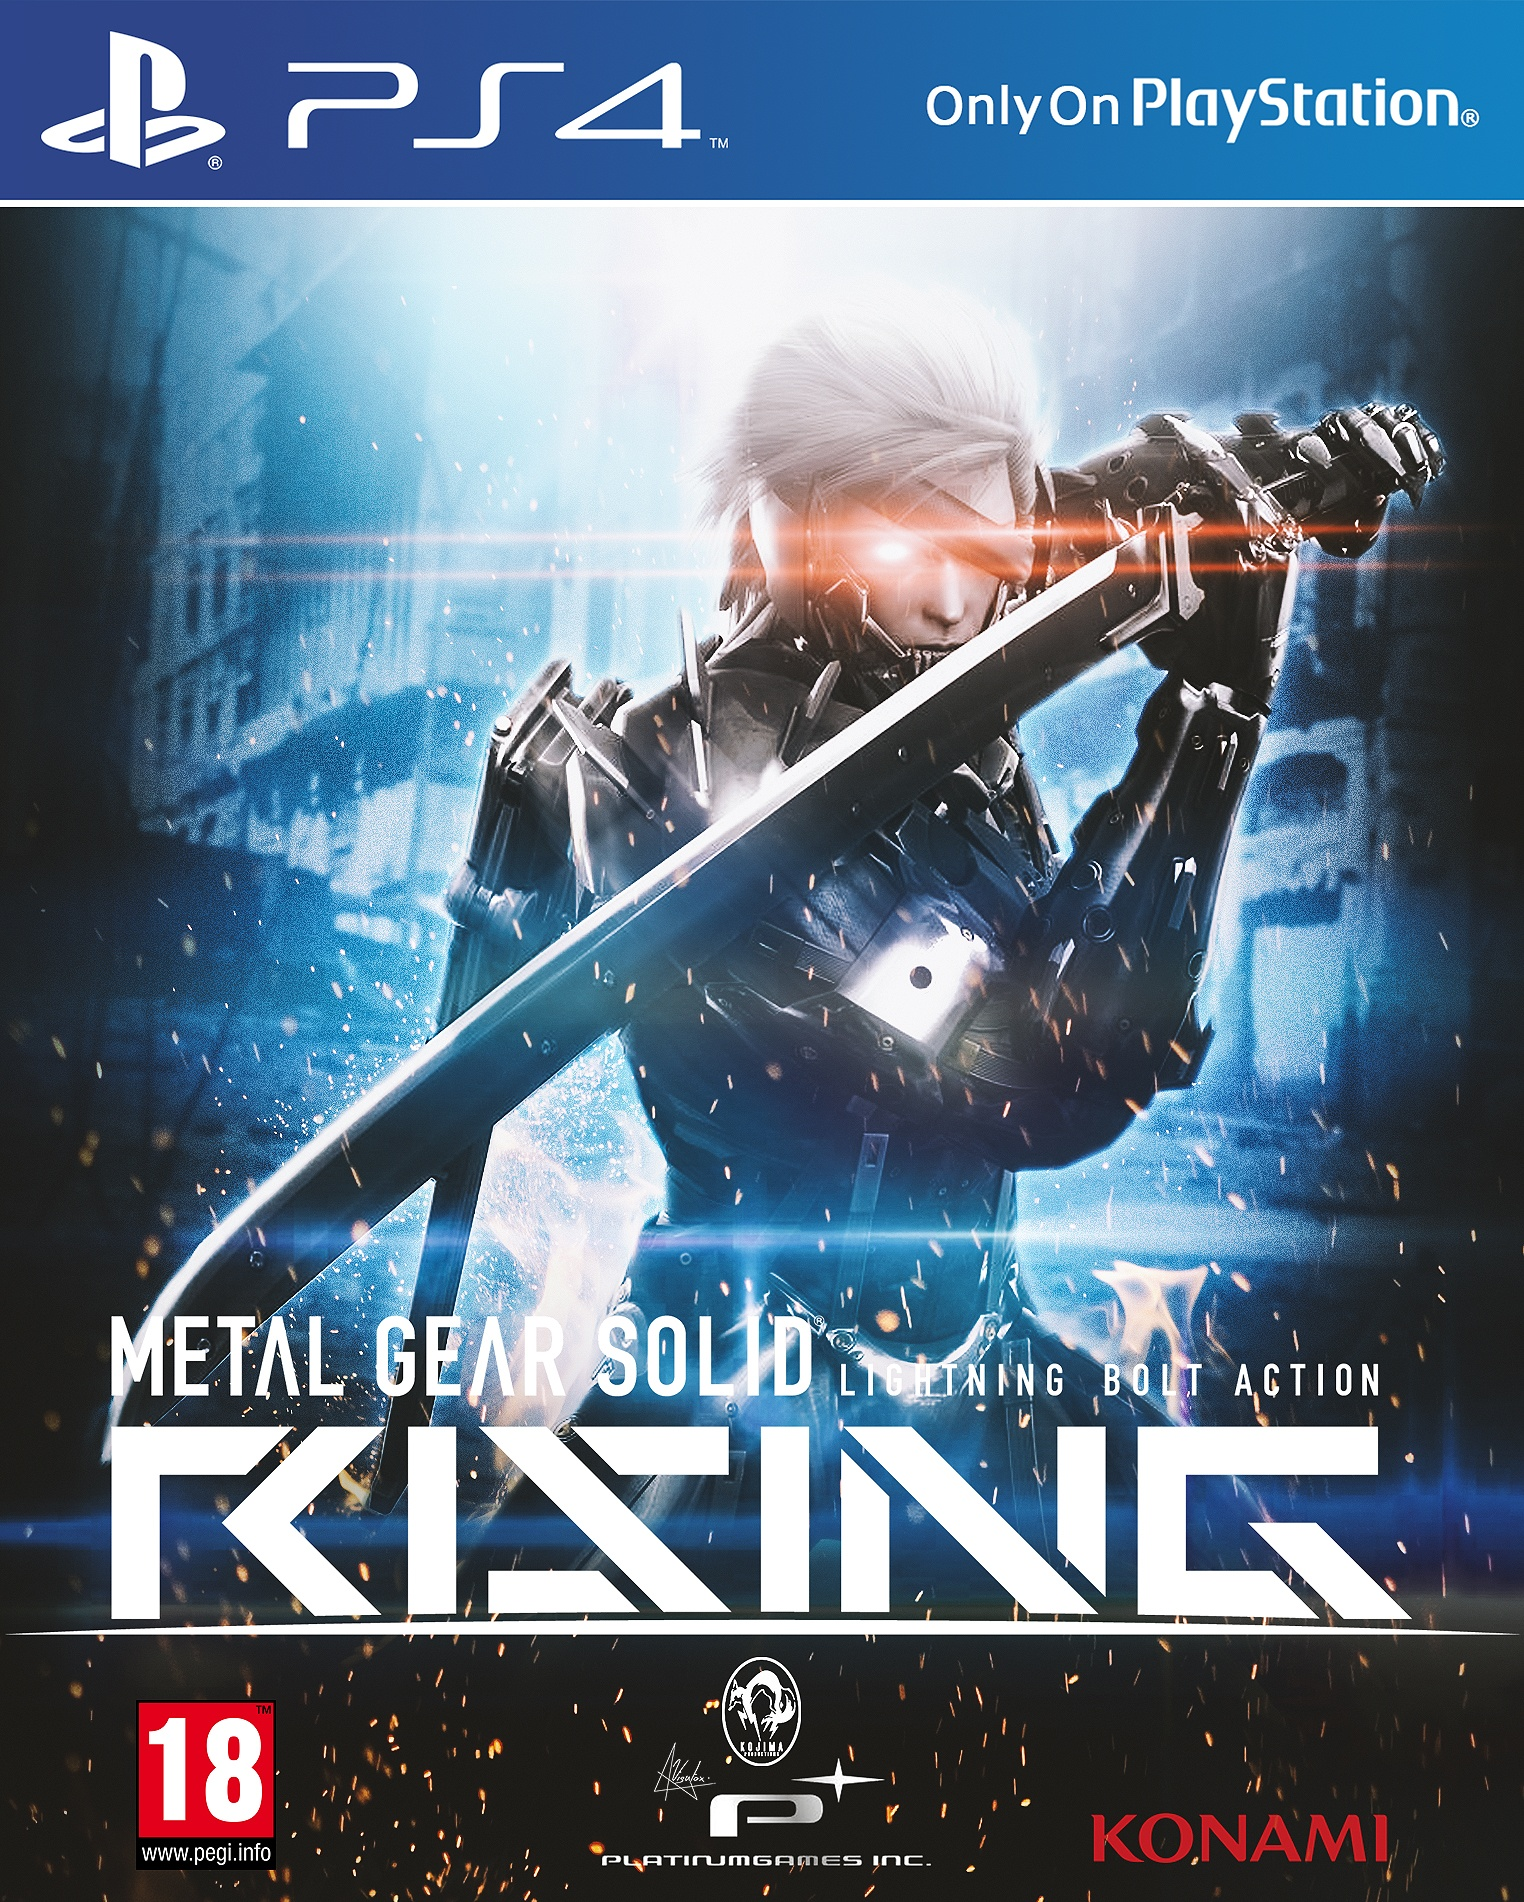 metal gear solid rising playstation 4 box art cover by visutox